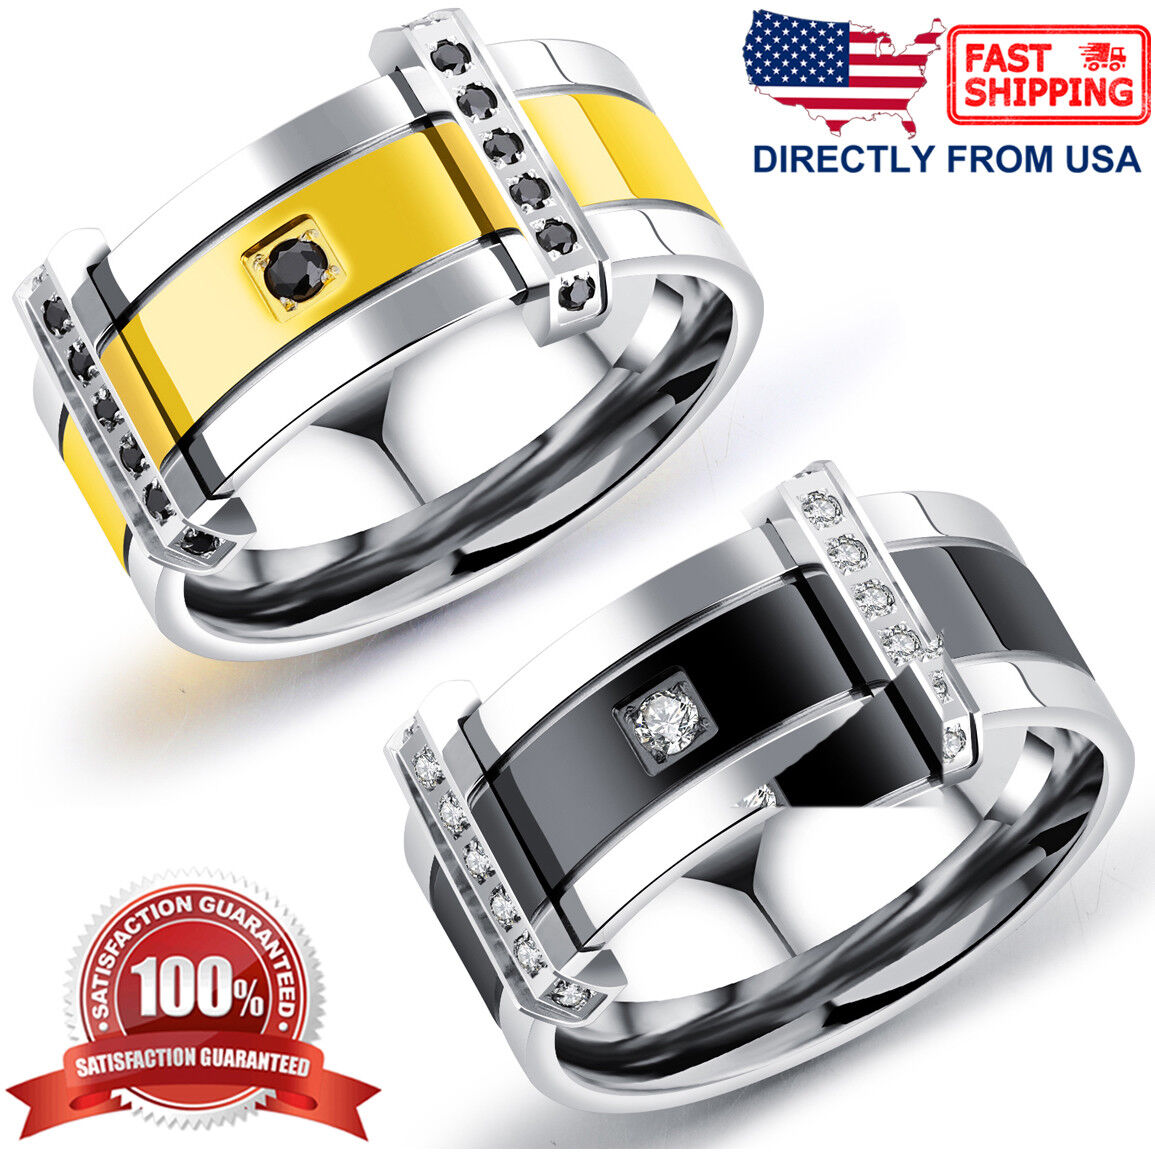 Men's Ring, Stainless Steel Cubic Zirconia 9mm Comfort Fit Wedding Band Jewelry & Watches